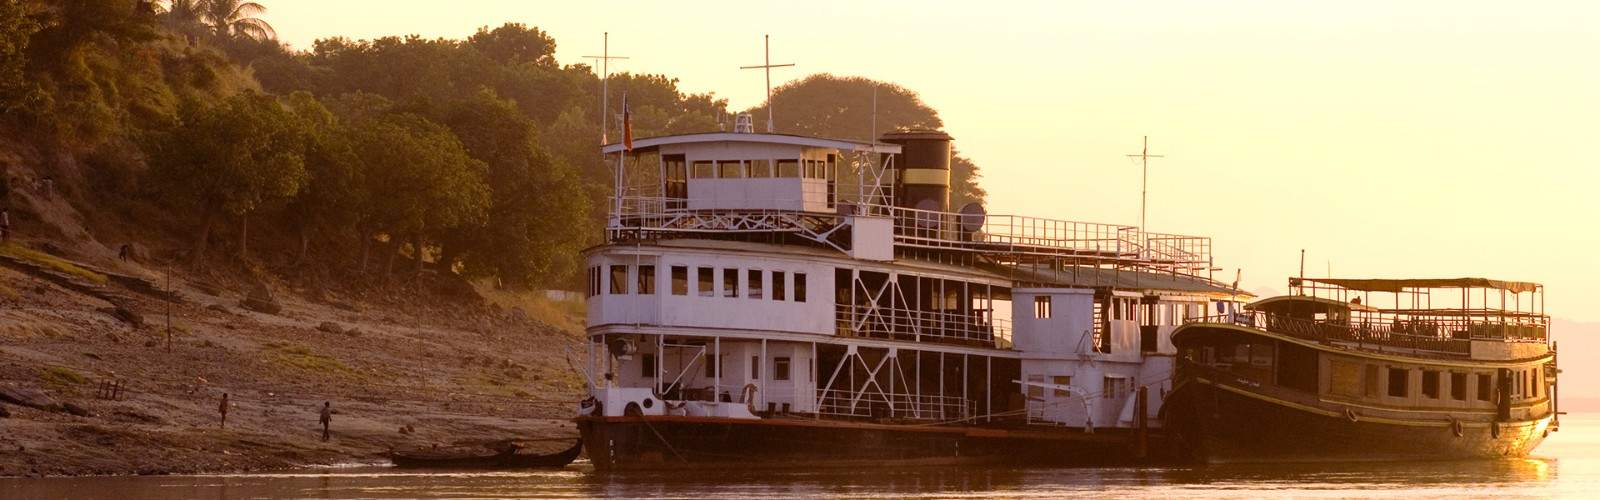 Irrawaddy River Cruise Holidays